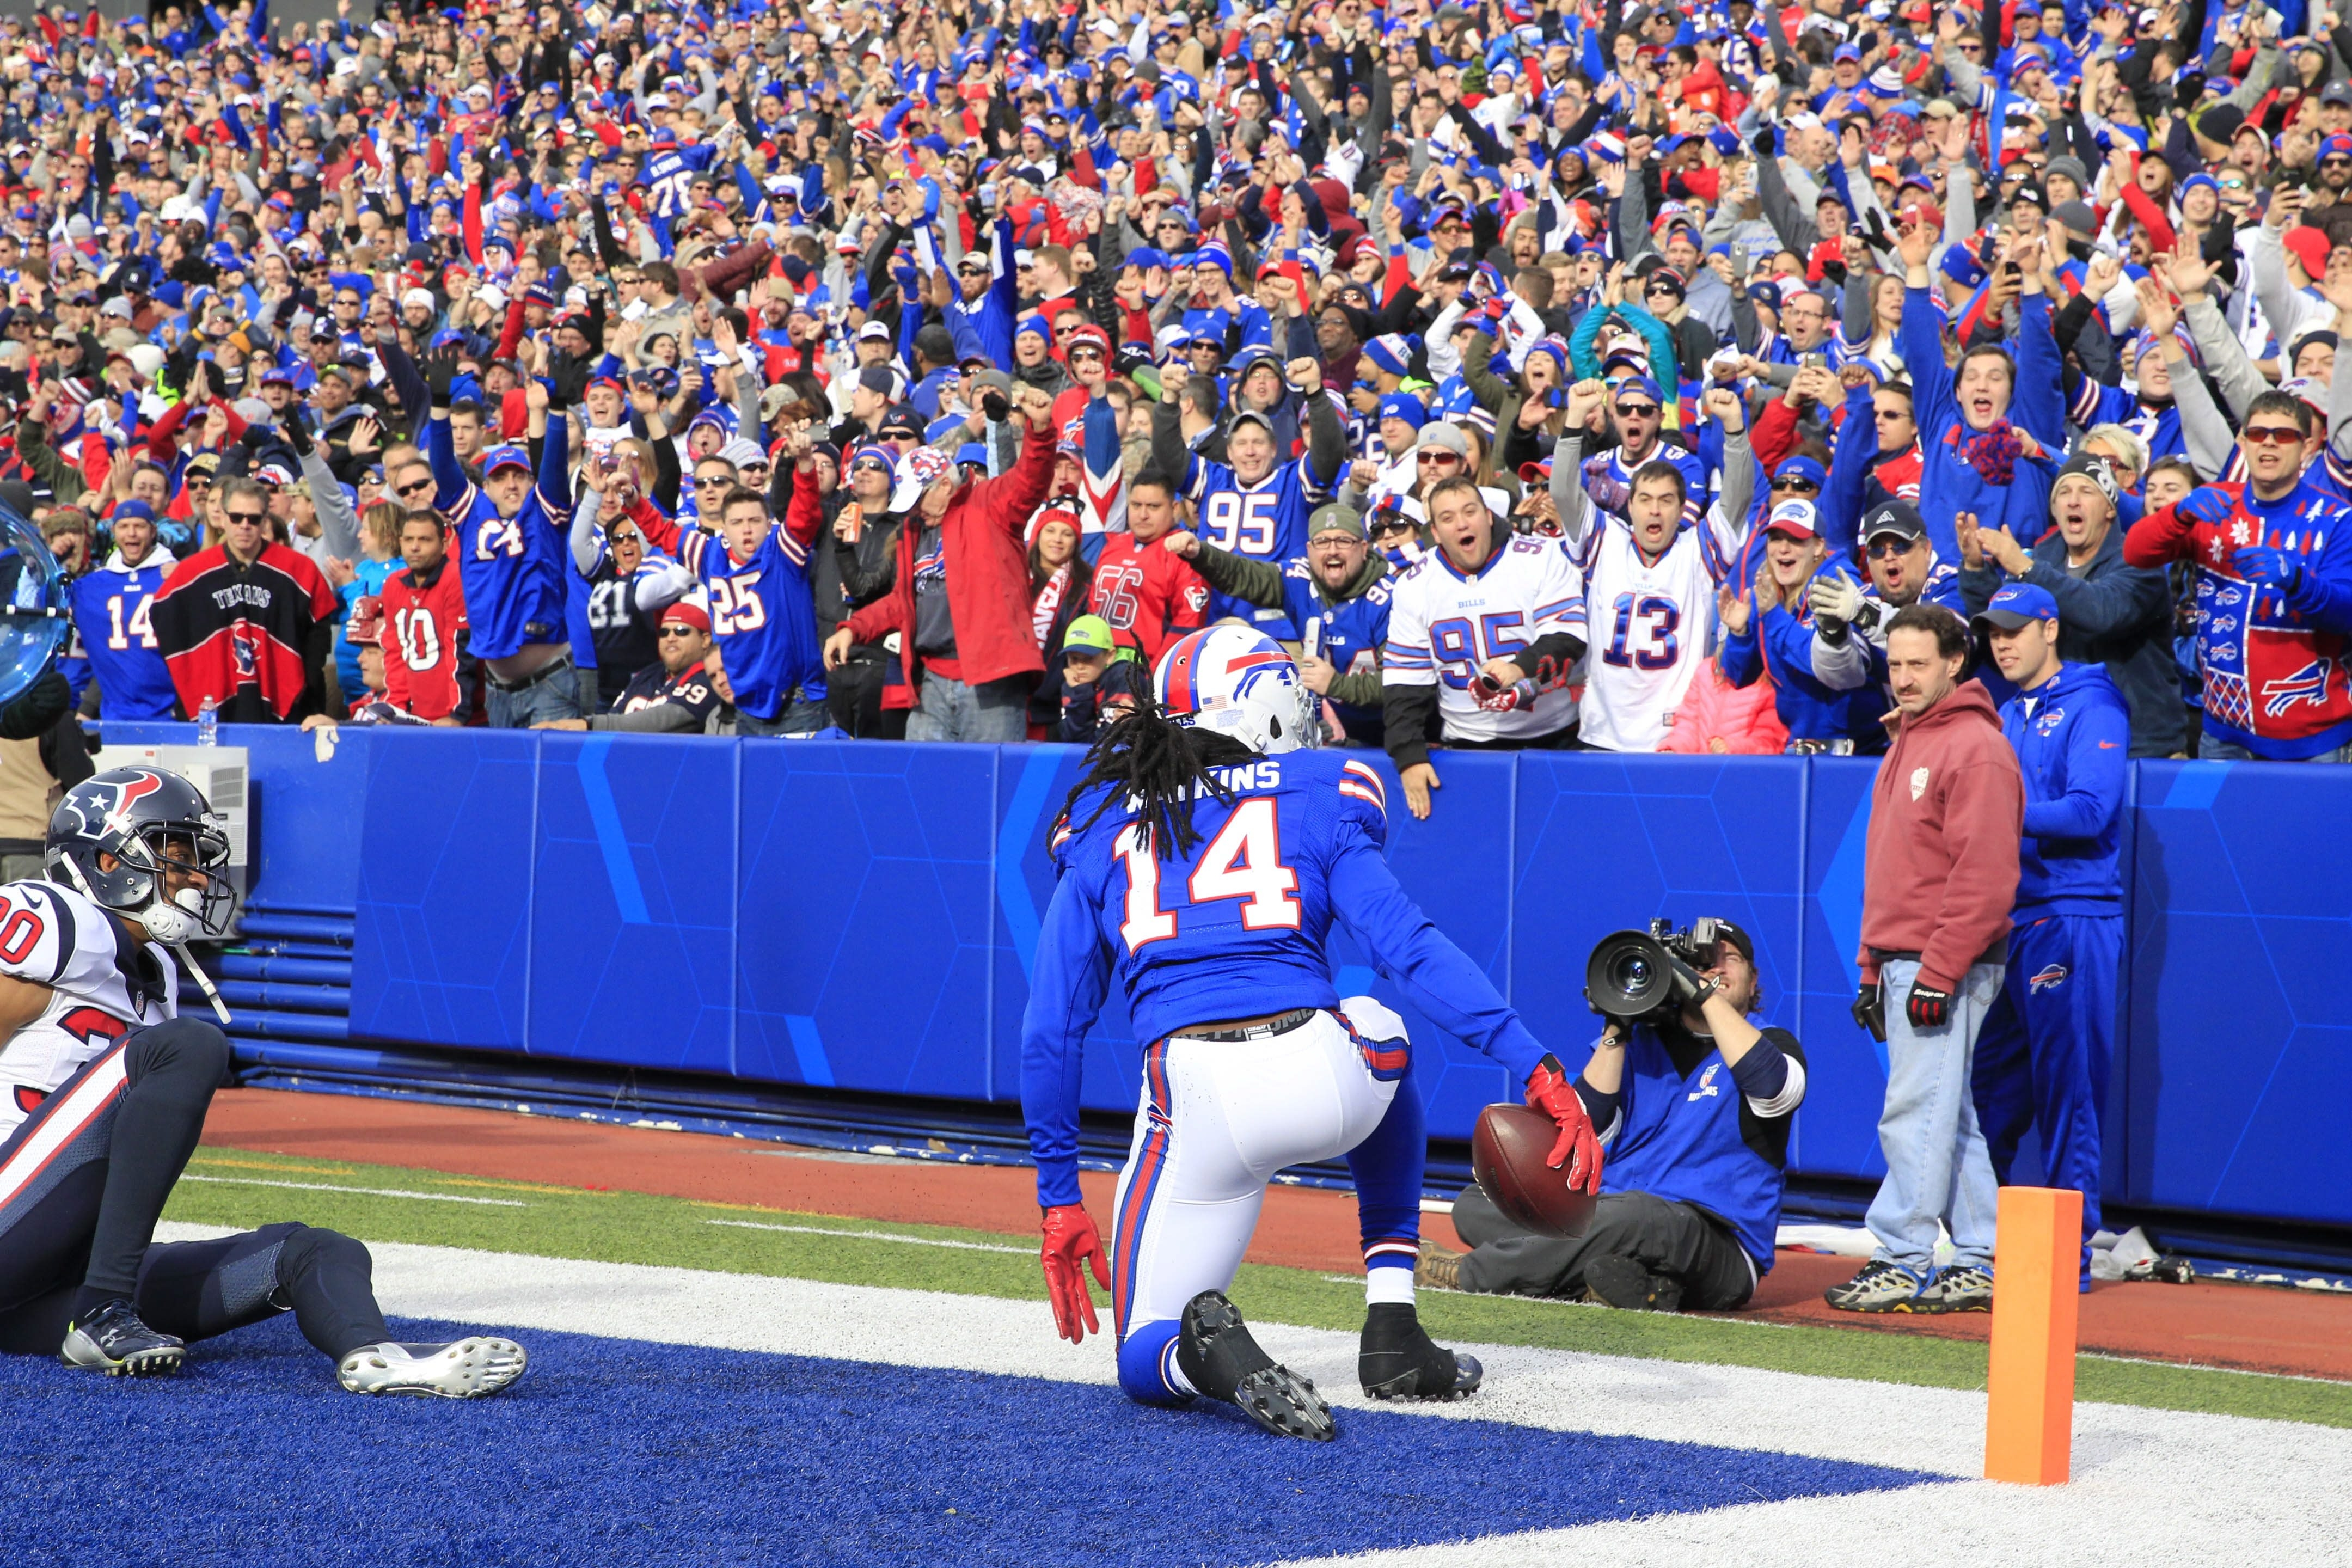 Fans celebrate a touchdown by Buffalo Bills wide receiver Sammy Watkins (14) against the Houston Texans during the first quarter at Ralph Wilson Stadium on Sunday, Dec. 6, 2015.  (Harry Scull Jr./Buffalo News)